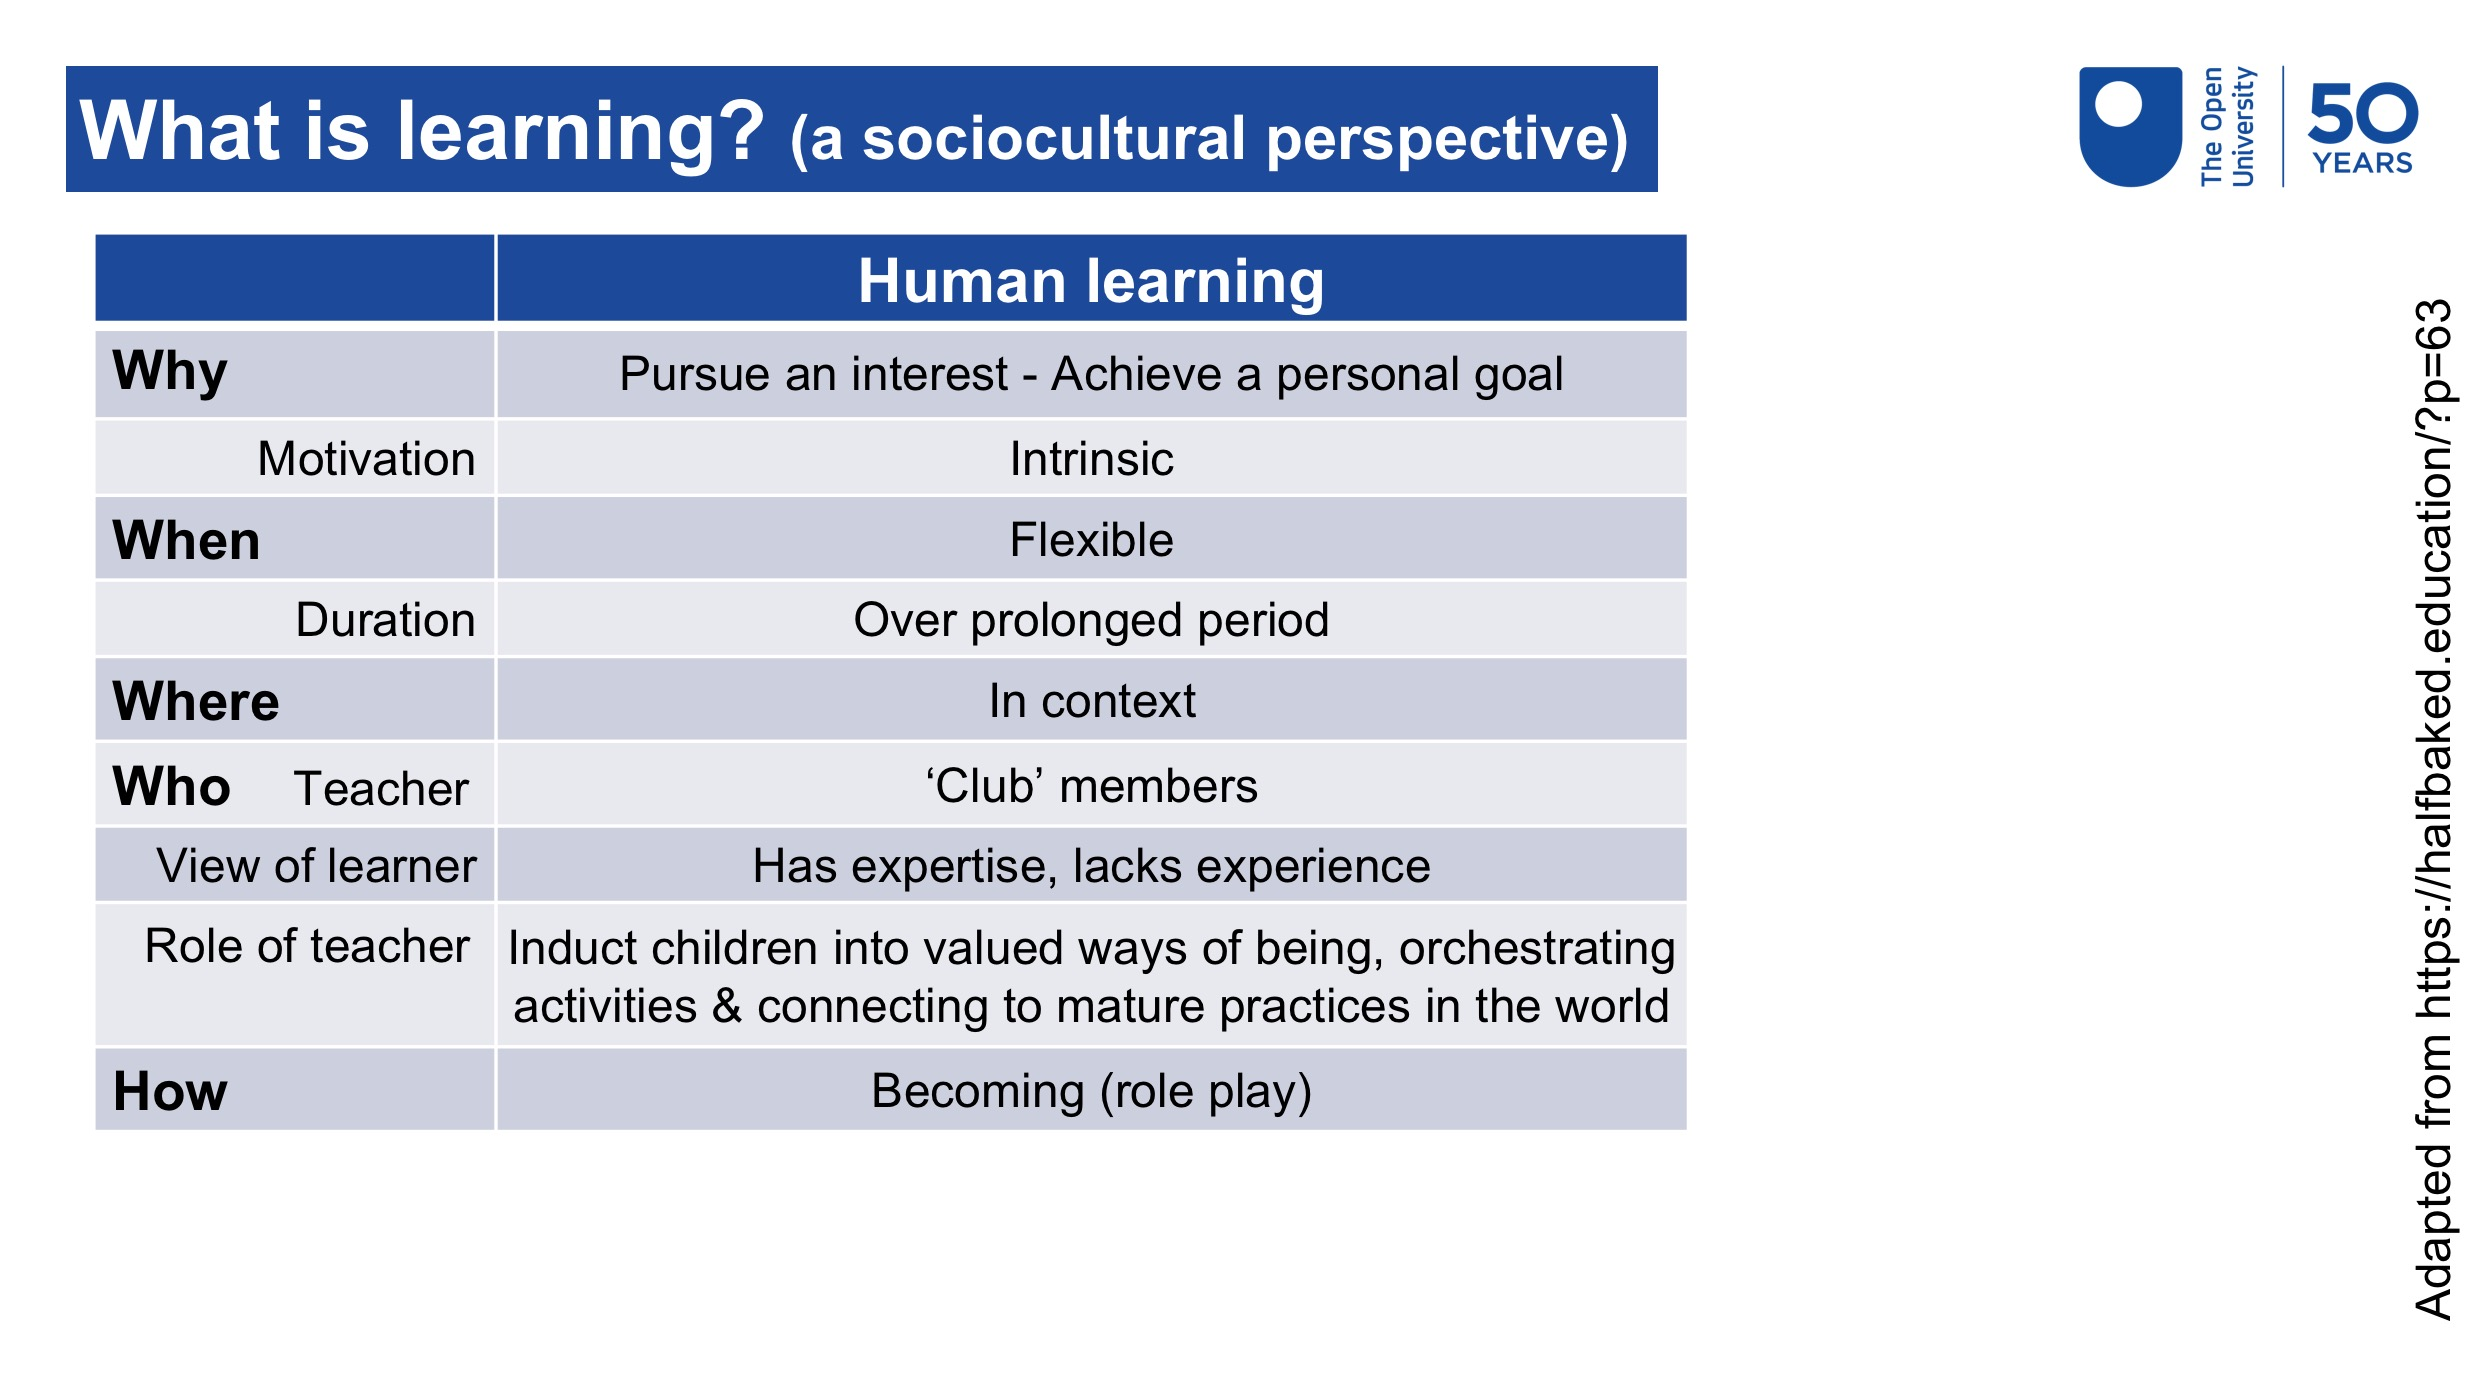 Table showing the why, when, where, who and how of human learning